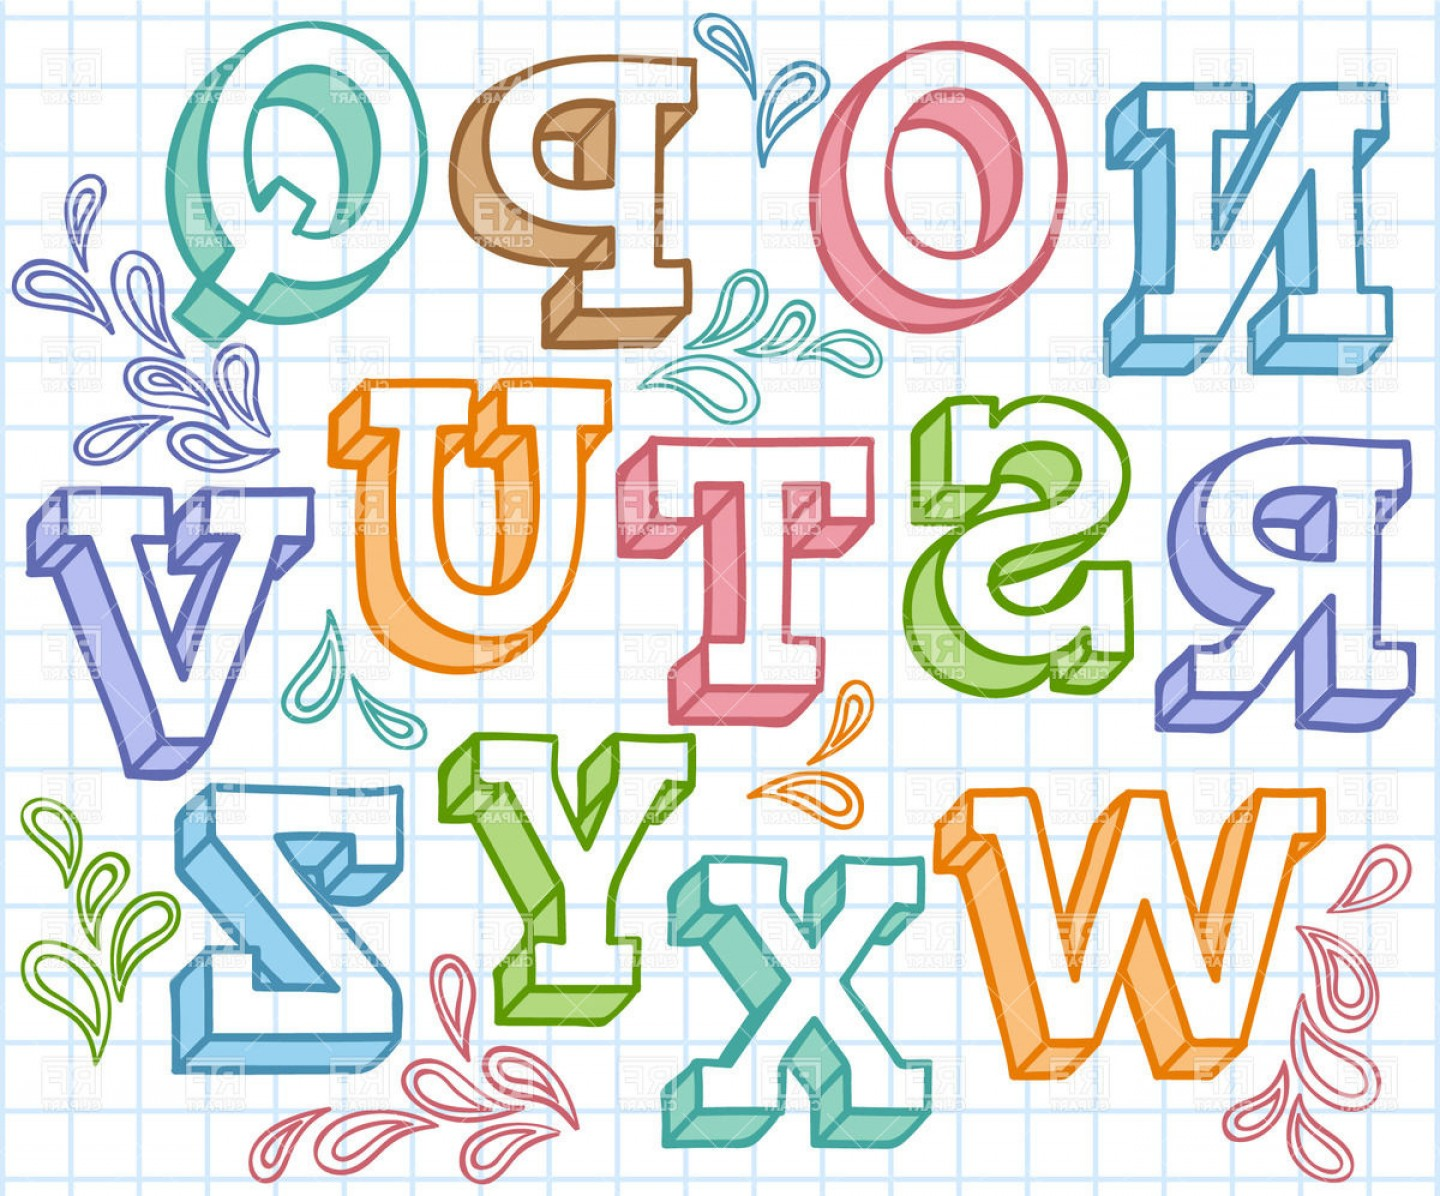 EPS Vector Letters: Colorful Sketchy Font Shaded Letters On Checkered Paper Vector Clipart